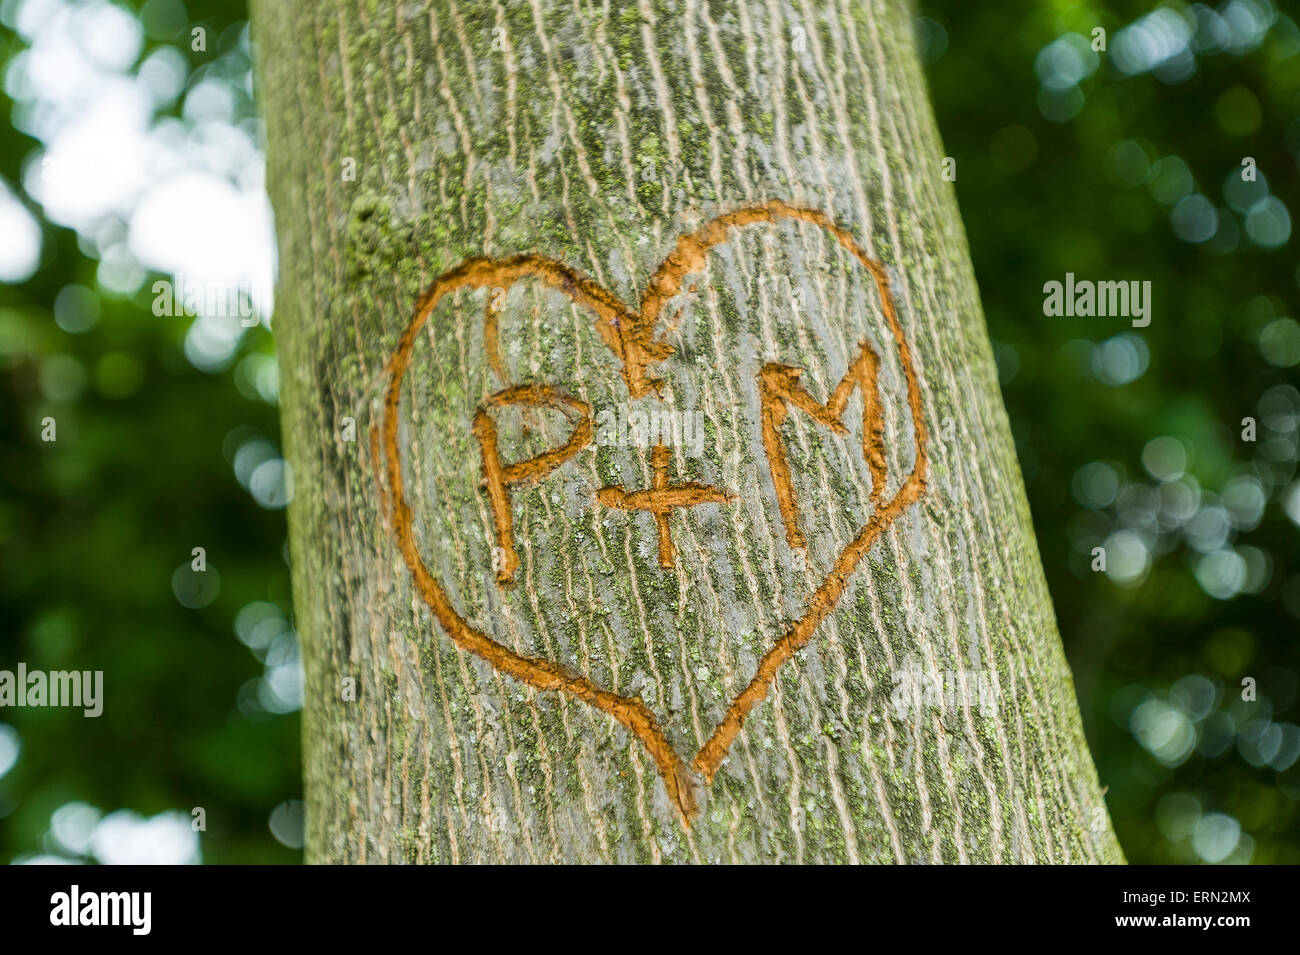 Lovers Initials Carved In Tree Stock Photos Lovers Initials Carved